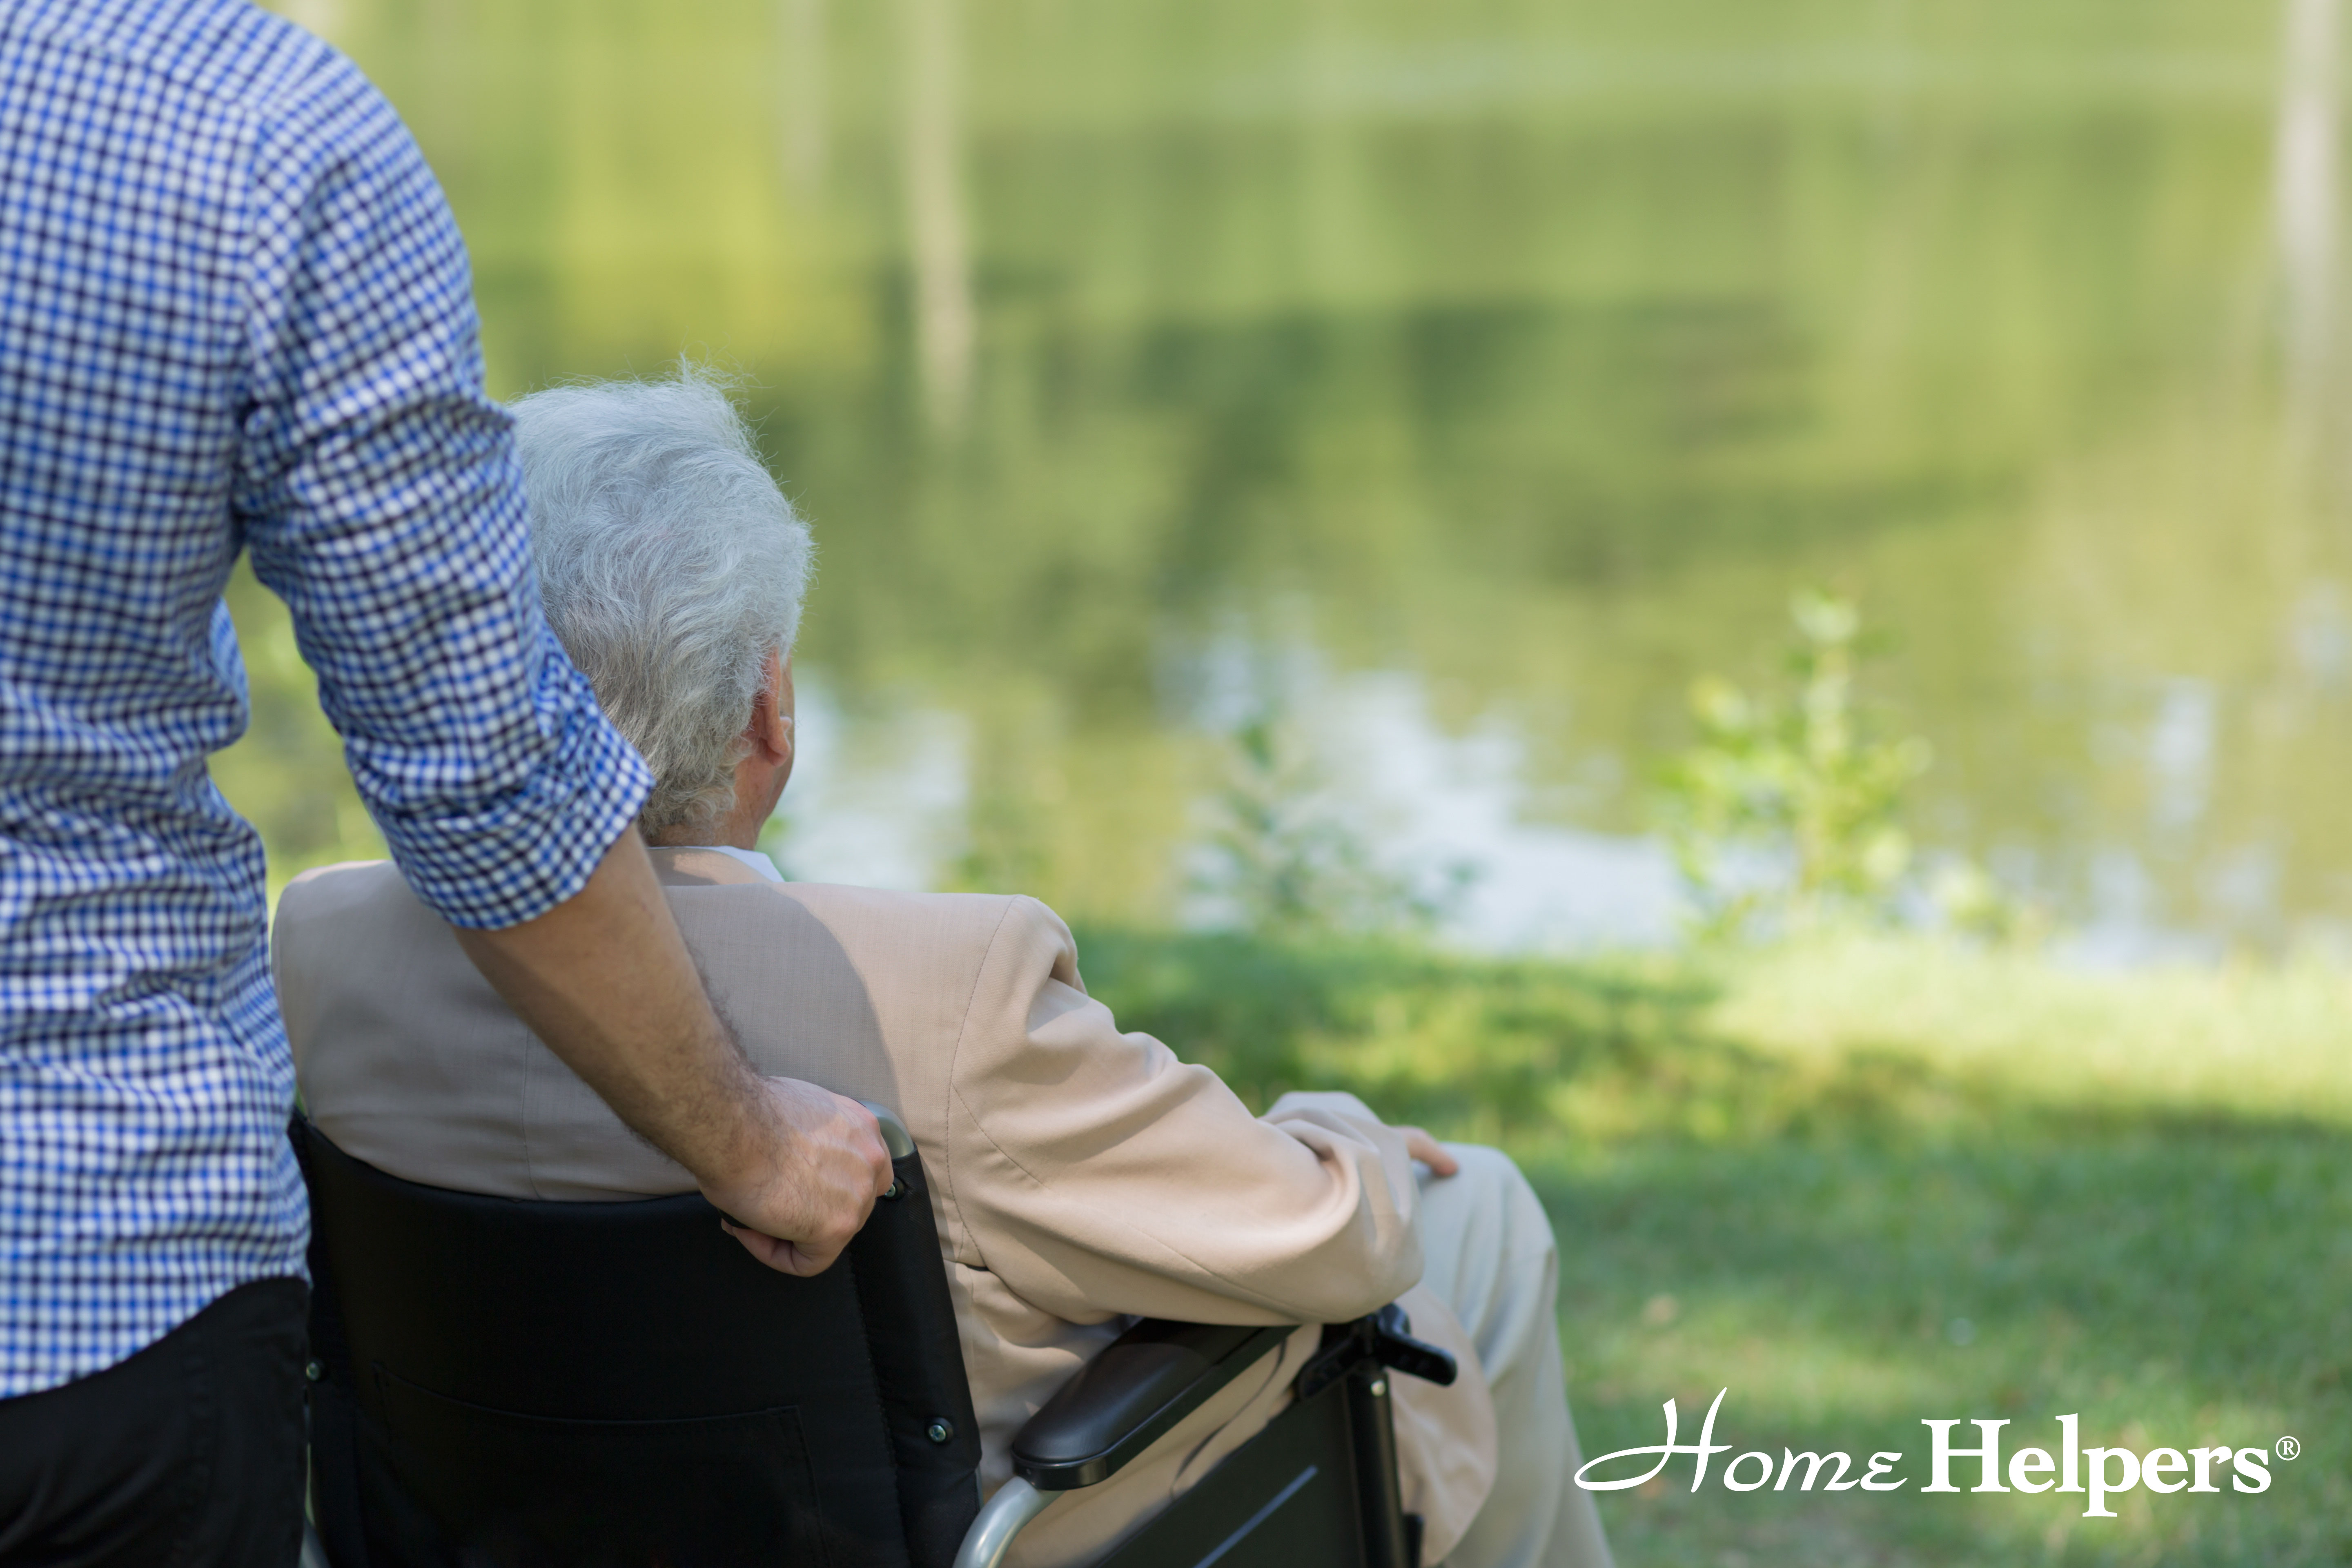 Home Helpers caregiver with client in a wheelchair at the park